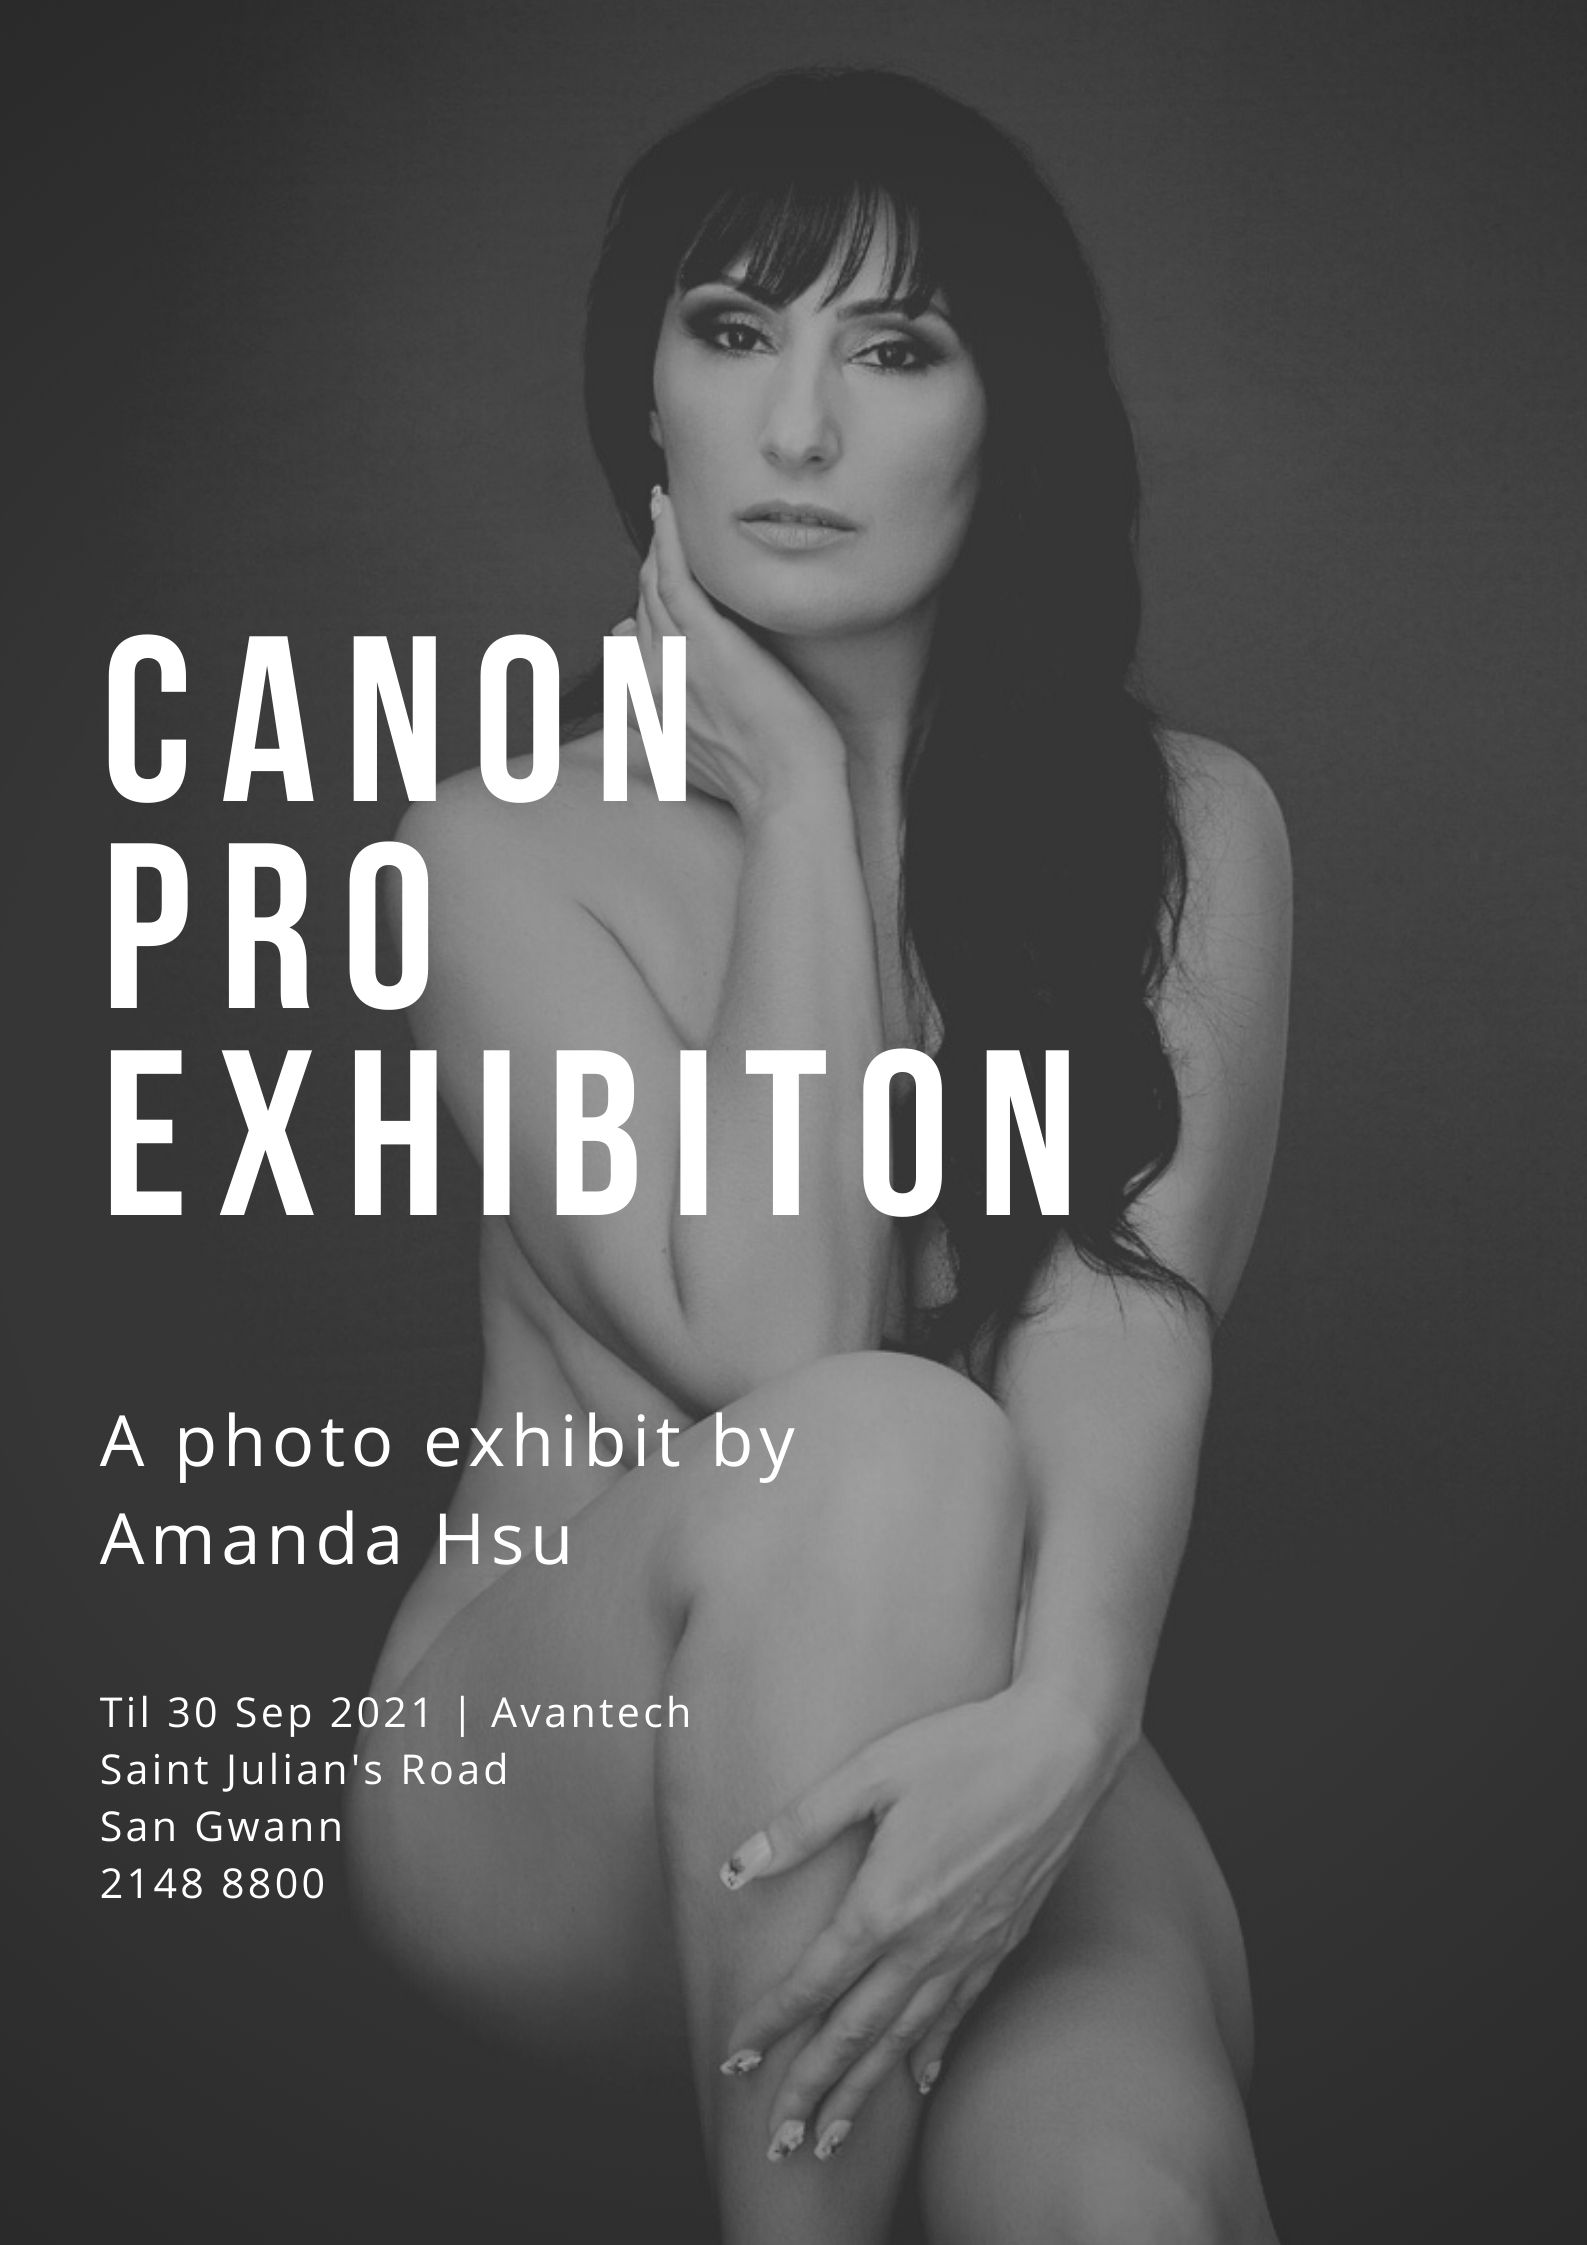 Events News What's up with Amanda  Canon-Pro-Portrait-Exhibition-Amanda-Hsu Canon Pro Exhibition